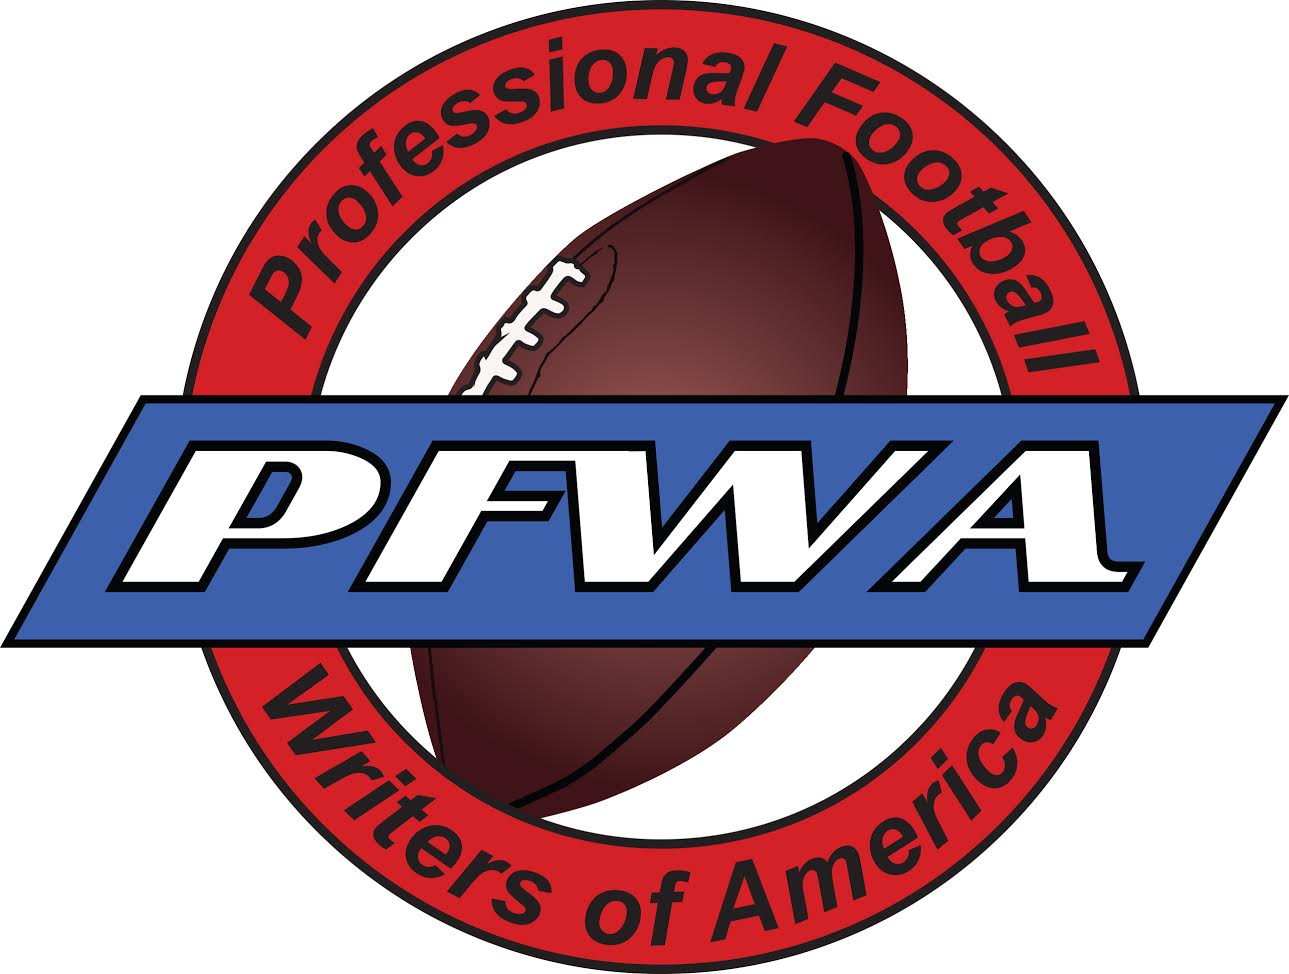 Professional Football Writers of America logo